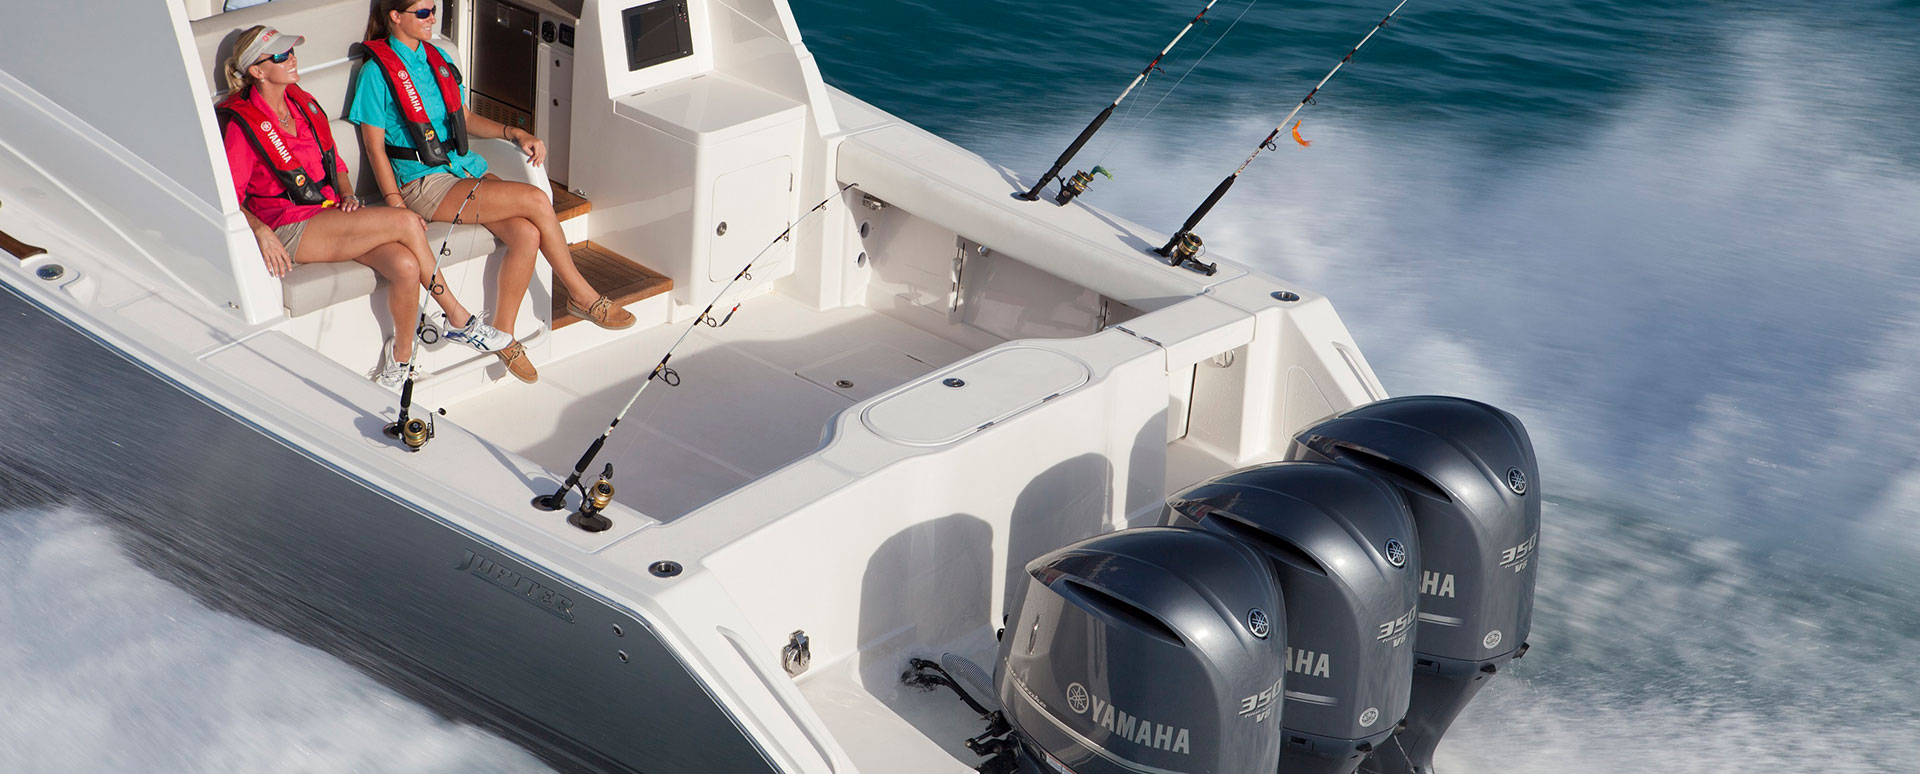 West Coast Marine offers Yamaha F350C V8 Outboards